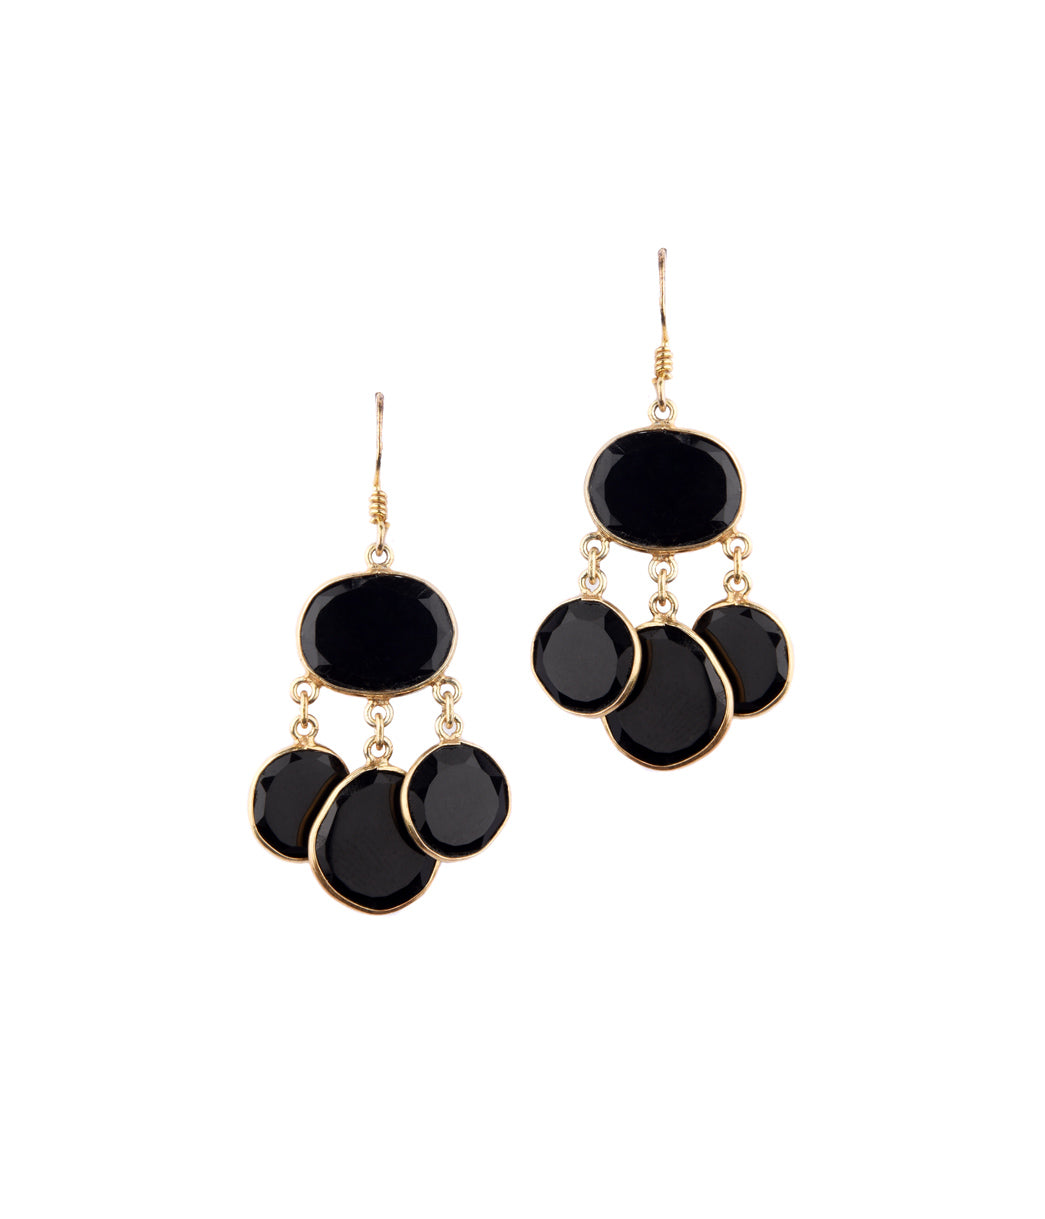 Raven Onyx Earrings